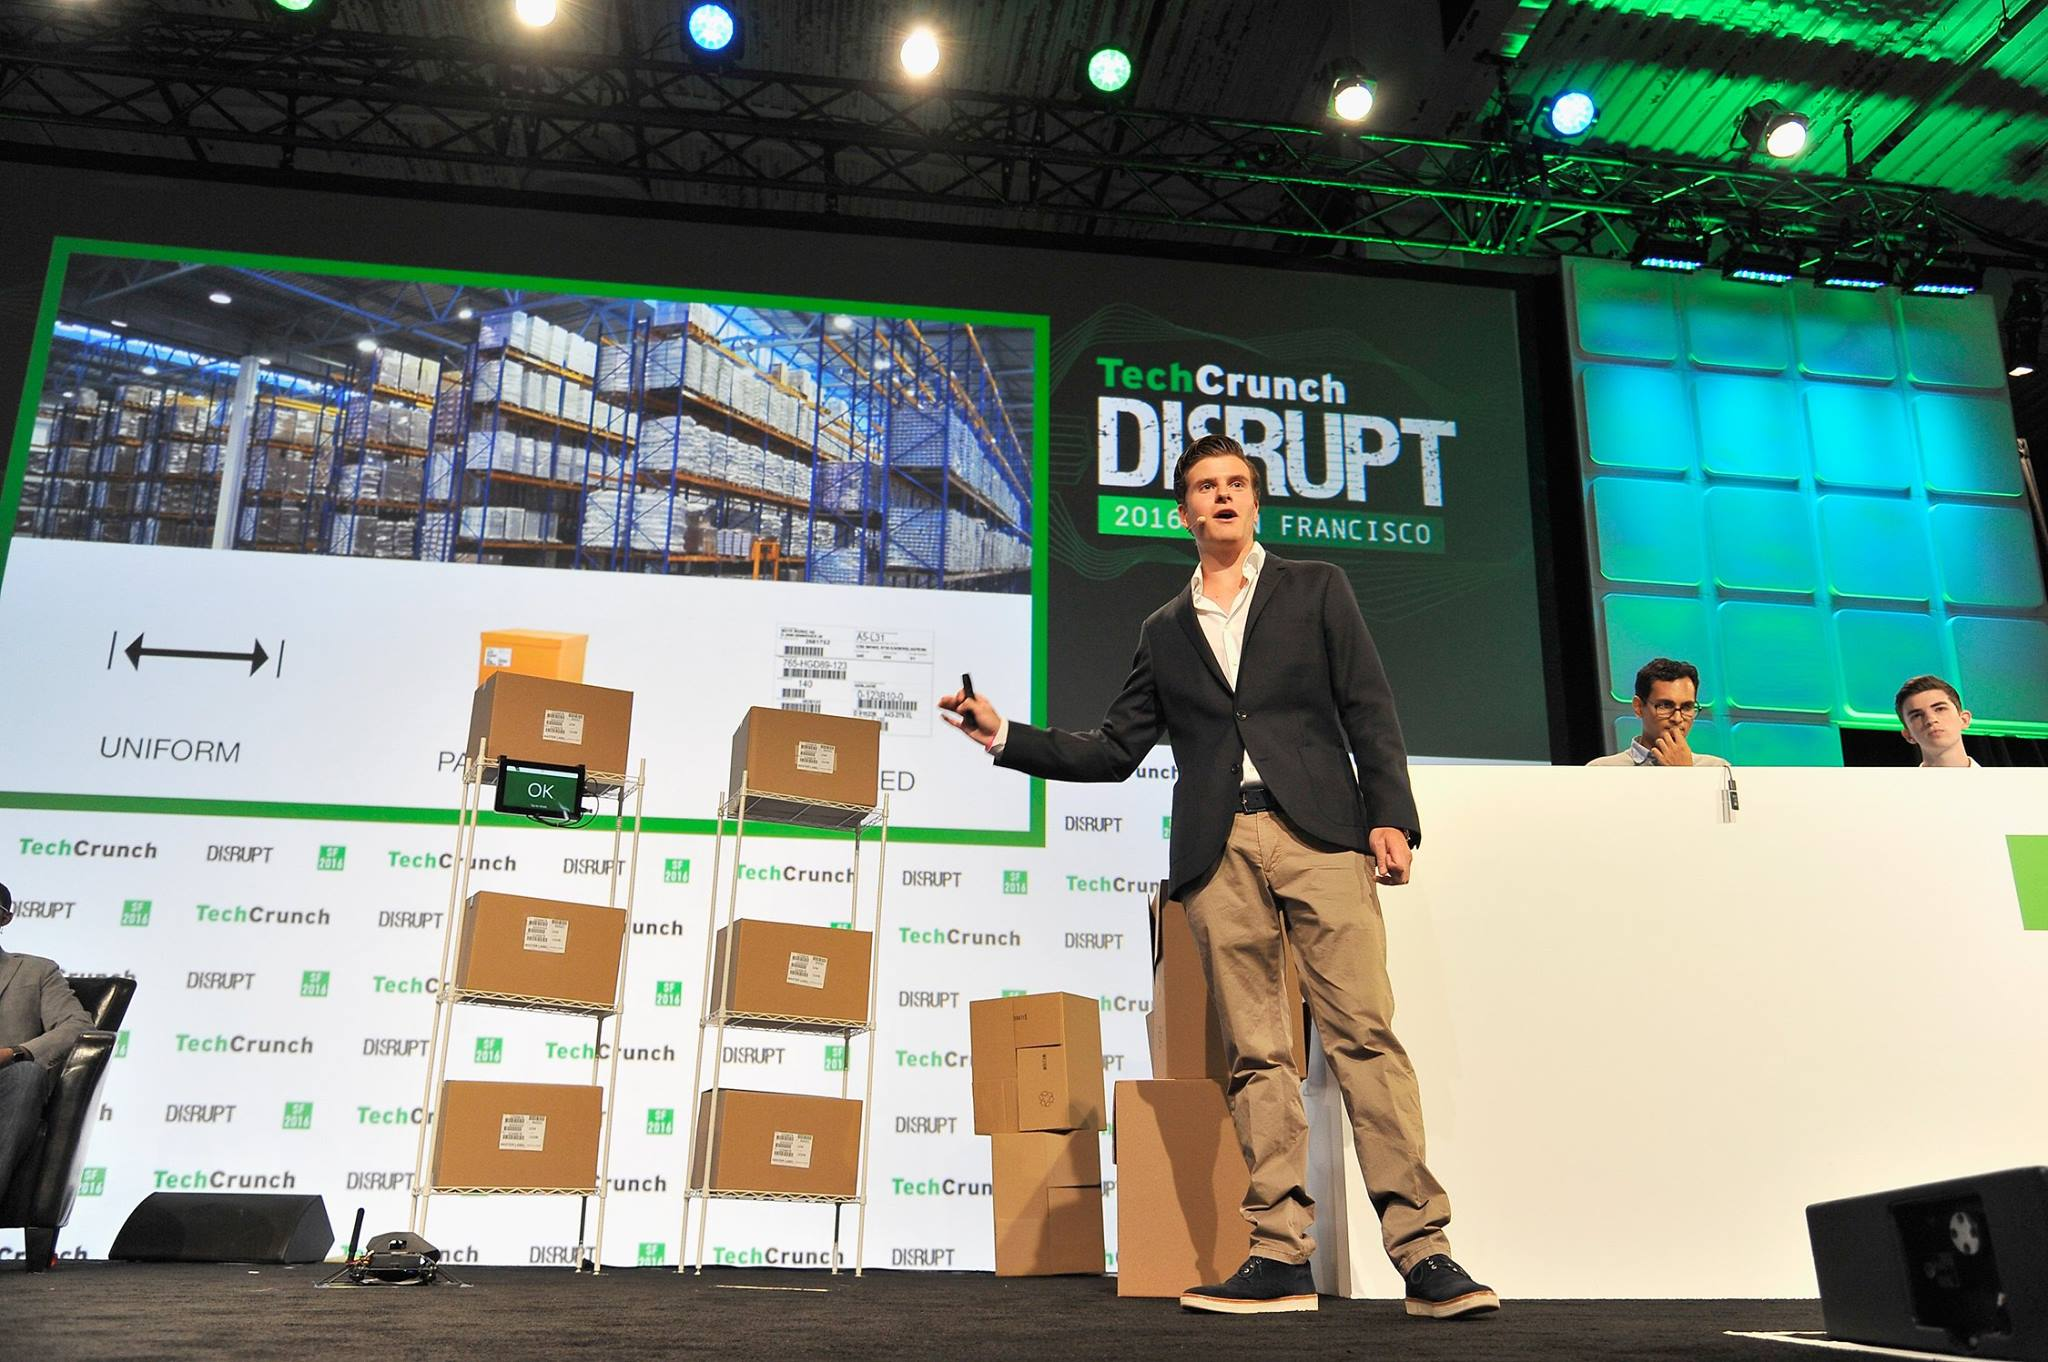 Image of IFM Marc at TechCrunch Disrupt